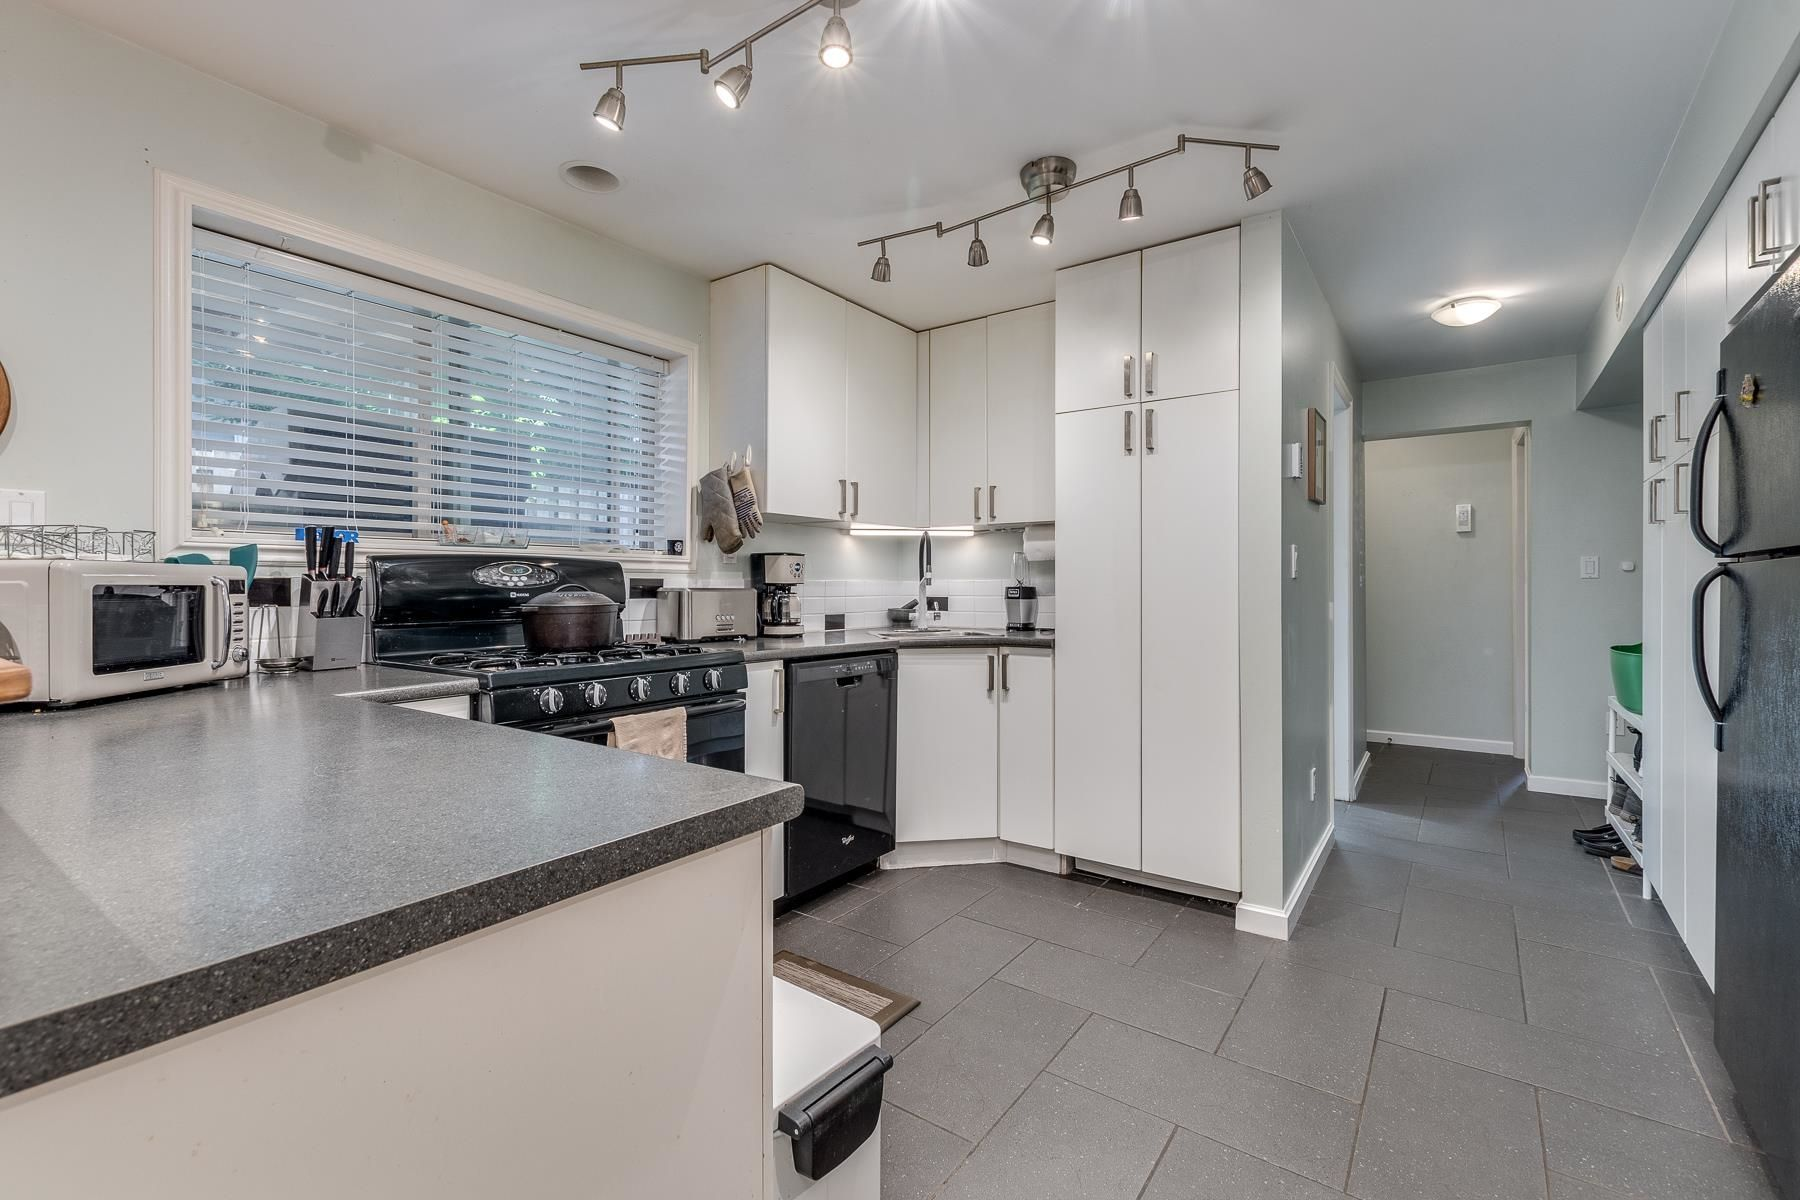 Photo 26: Photos: 3671 SOMERSET Street in Port Coquitlam: Lincoln Park PQ House for sale : MLS®# R2610216